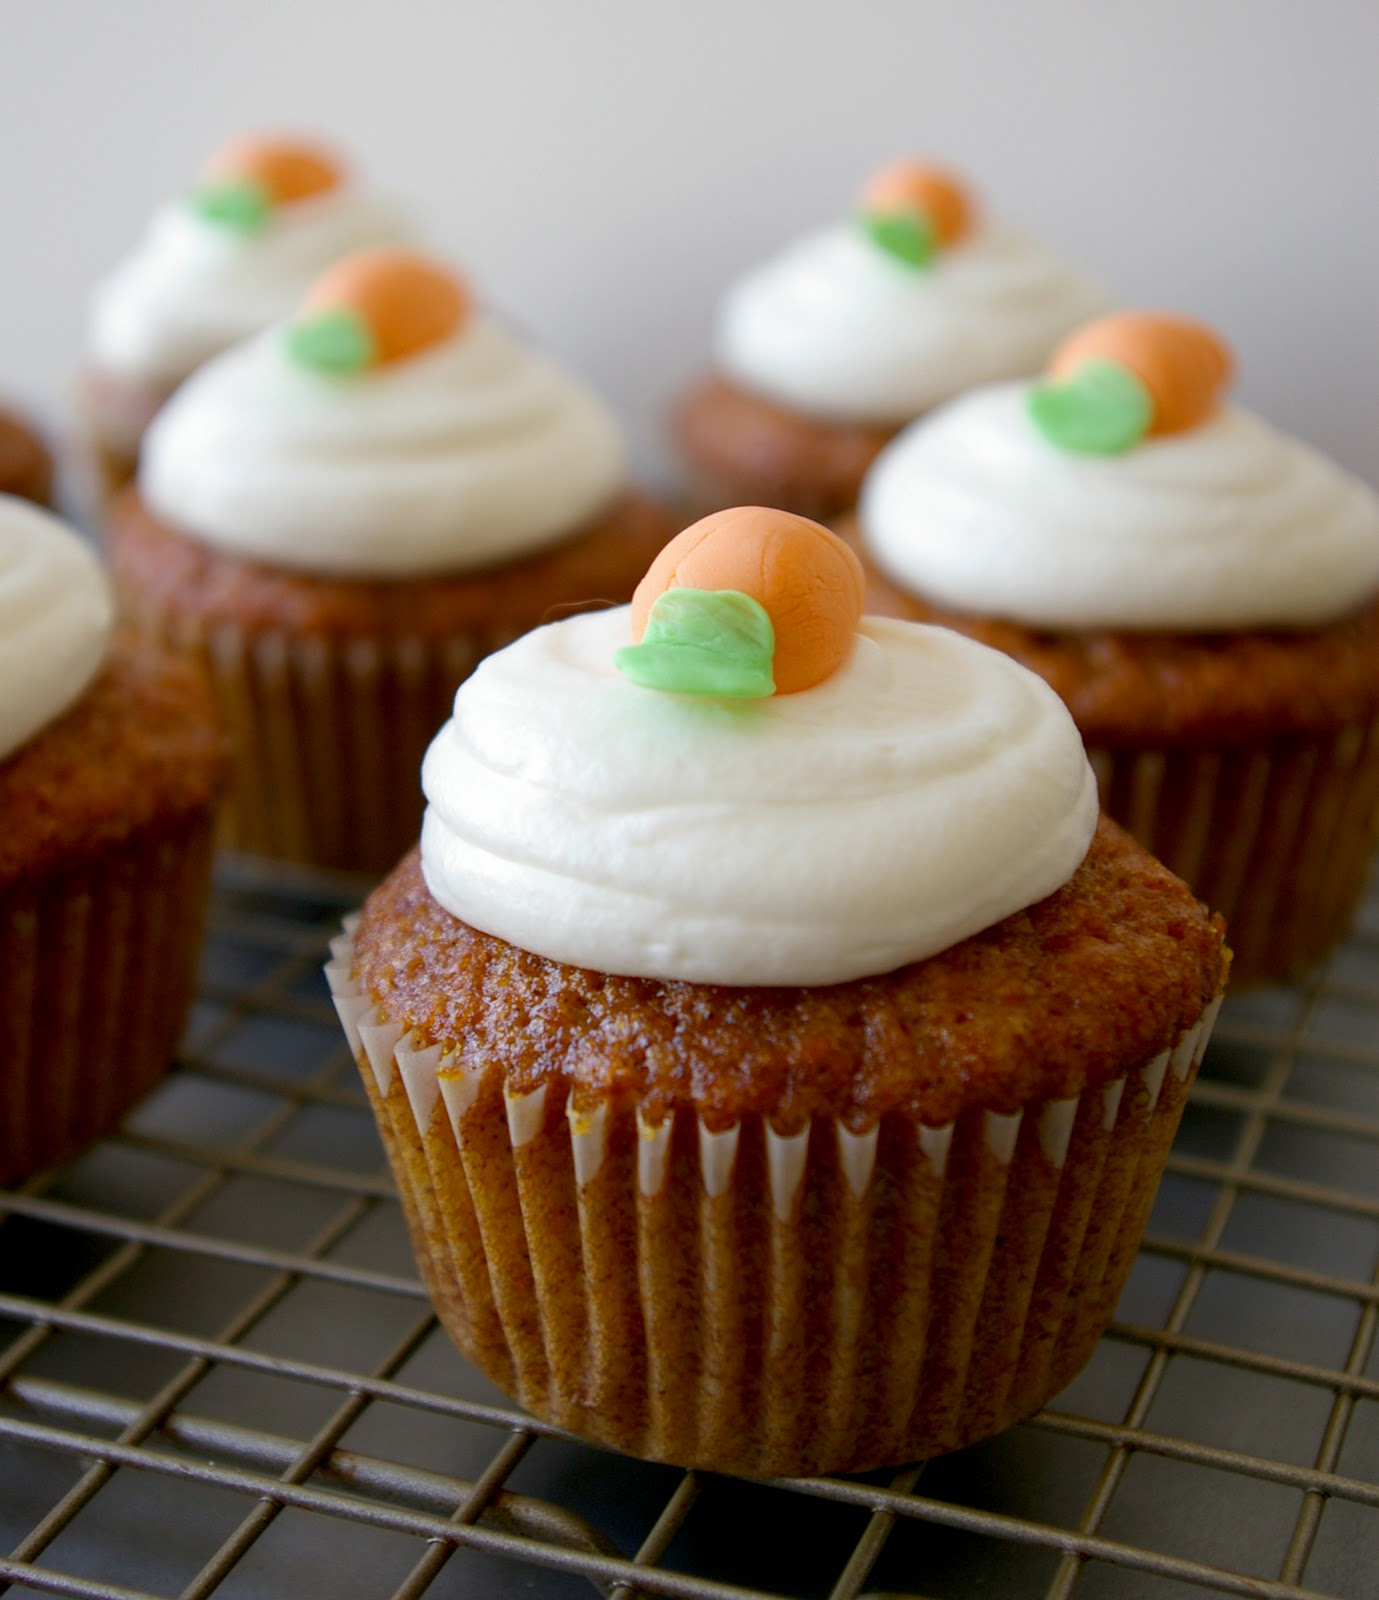 CARROT CAKE CUPCAKES - For childrens